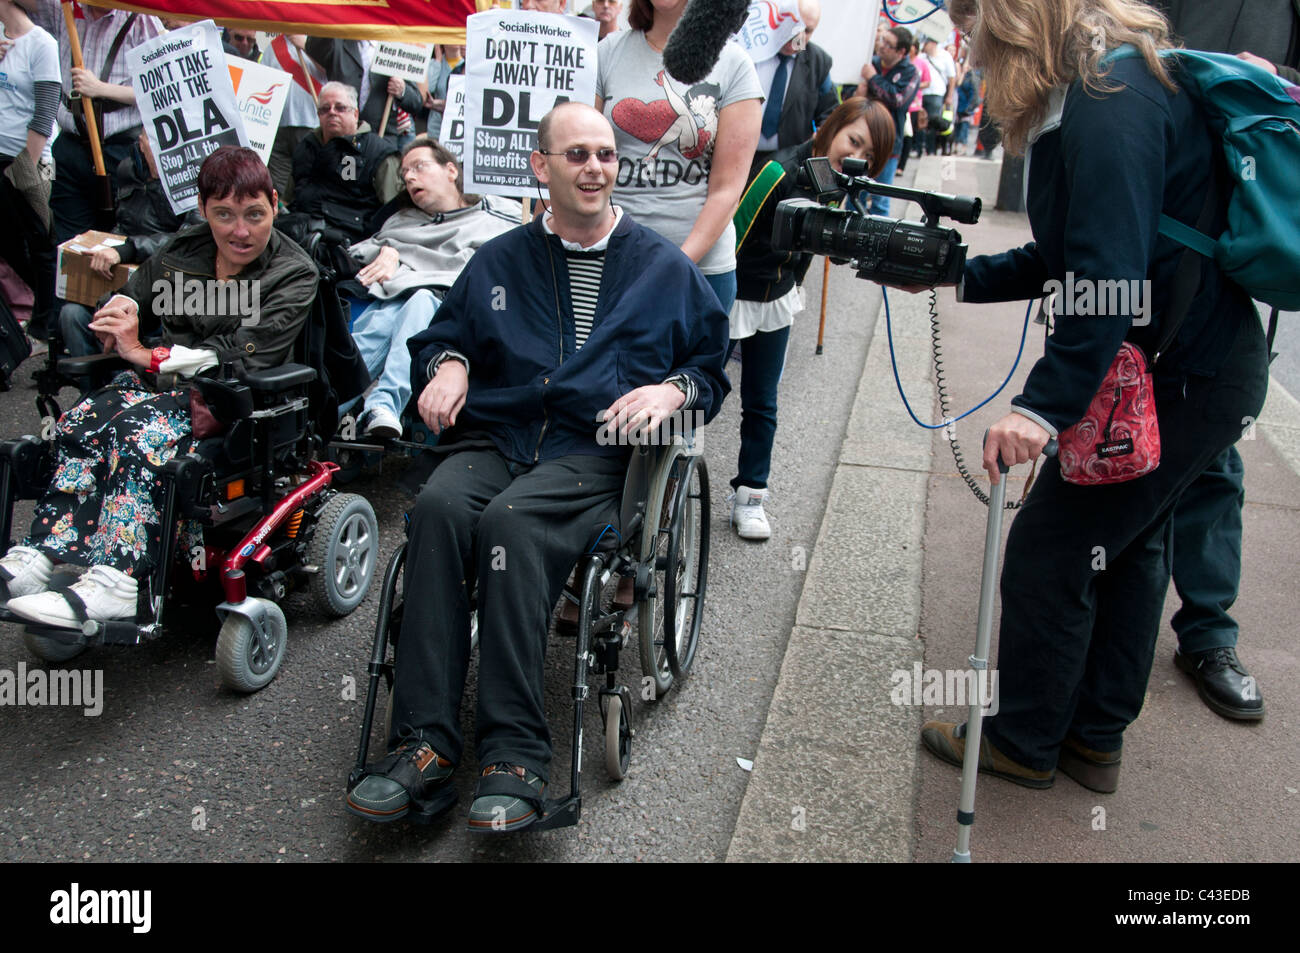 Hardest Hit demonstration  against government cuts to services to people with disabilities. May11, - Stock Image